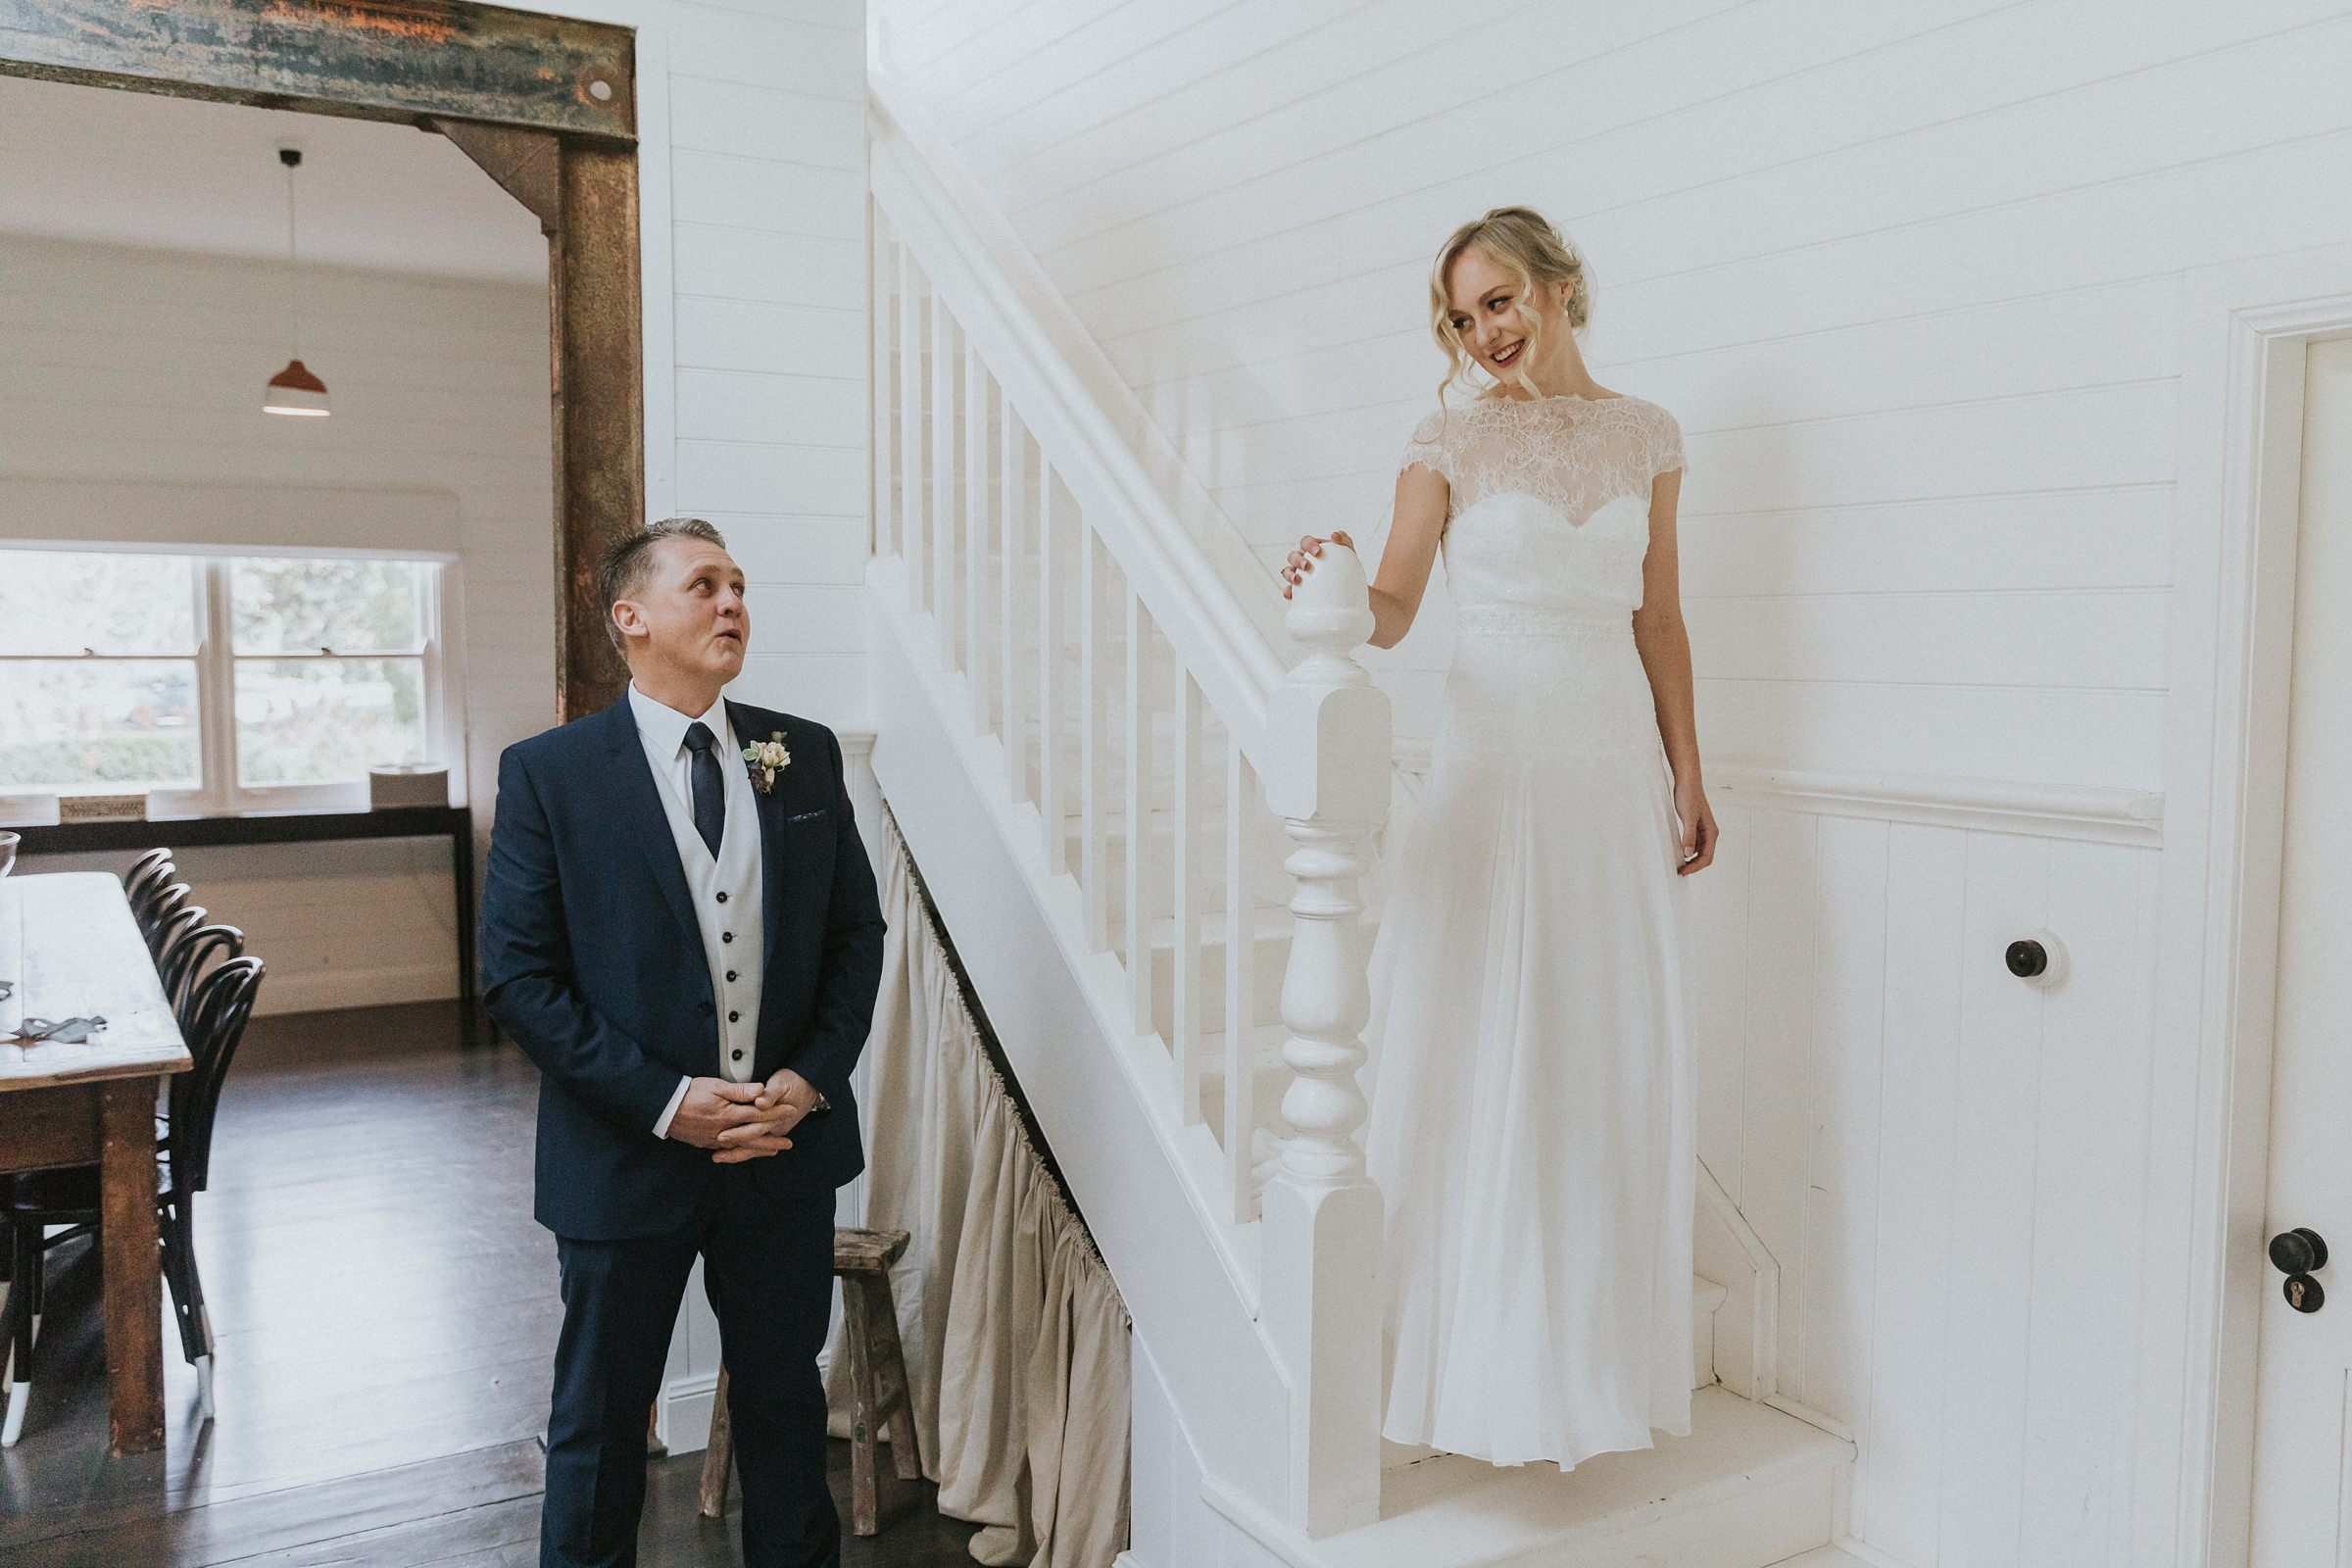 unscripted wedding photography in bowral by jonathan david